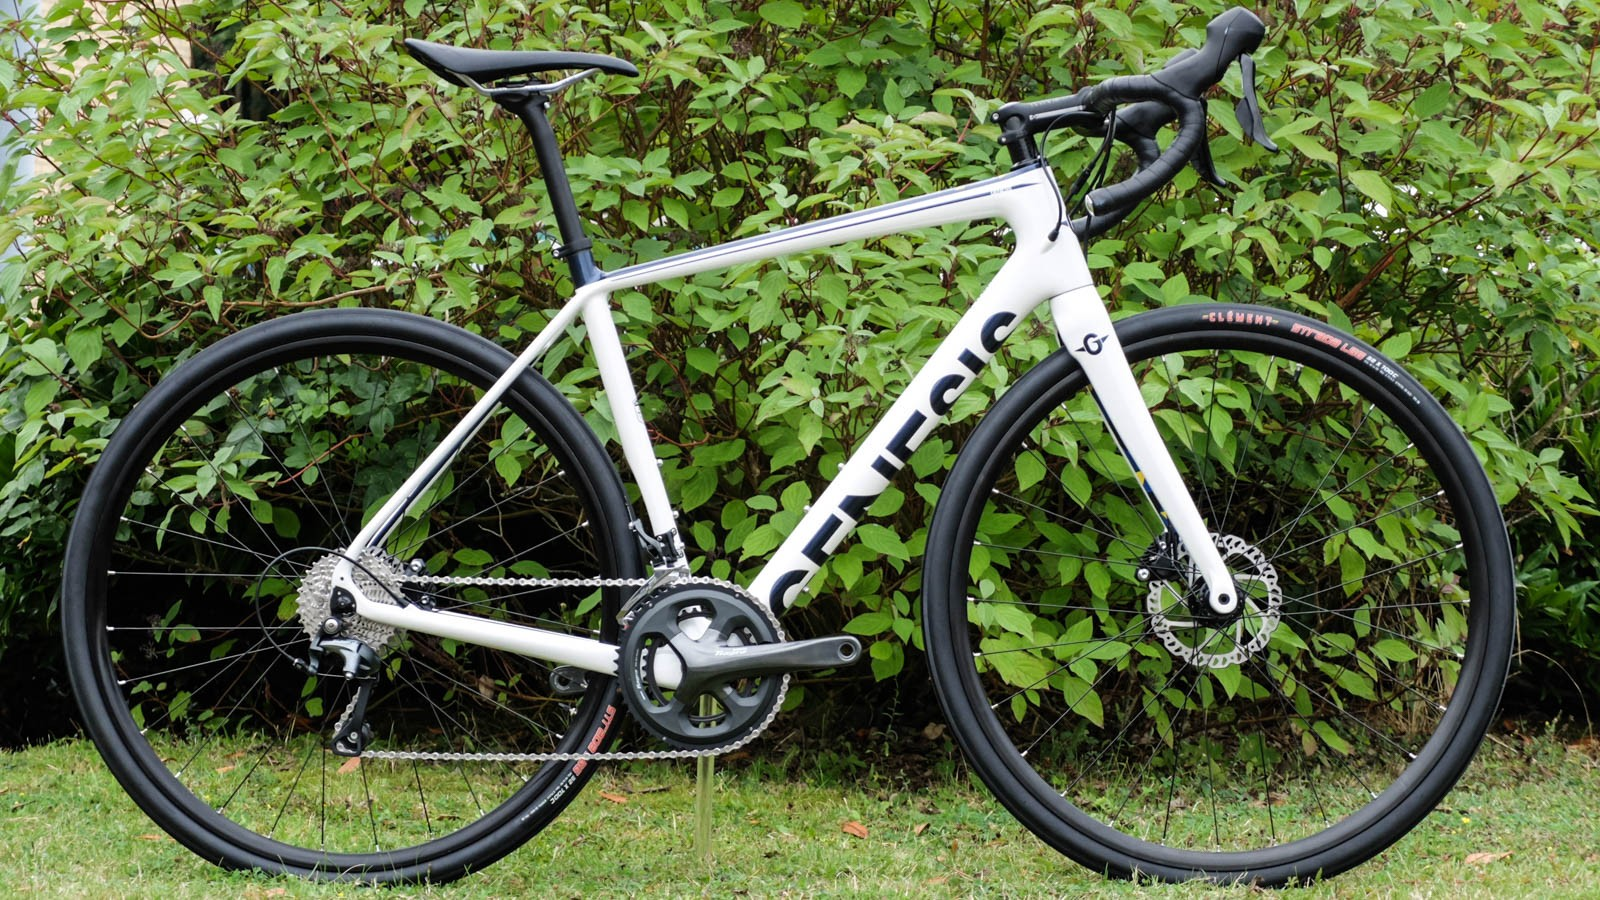 The Datum 10 comes in £1,899.99. For that you get a full Tiagra hydro grouspet and this nice, white paintjob